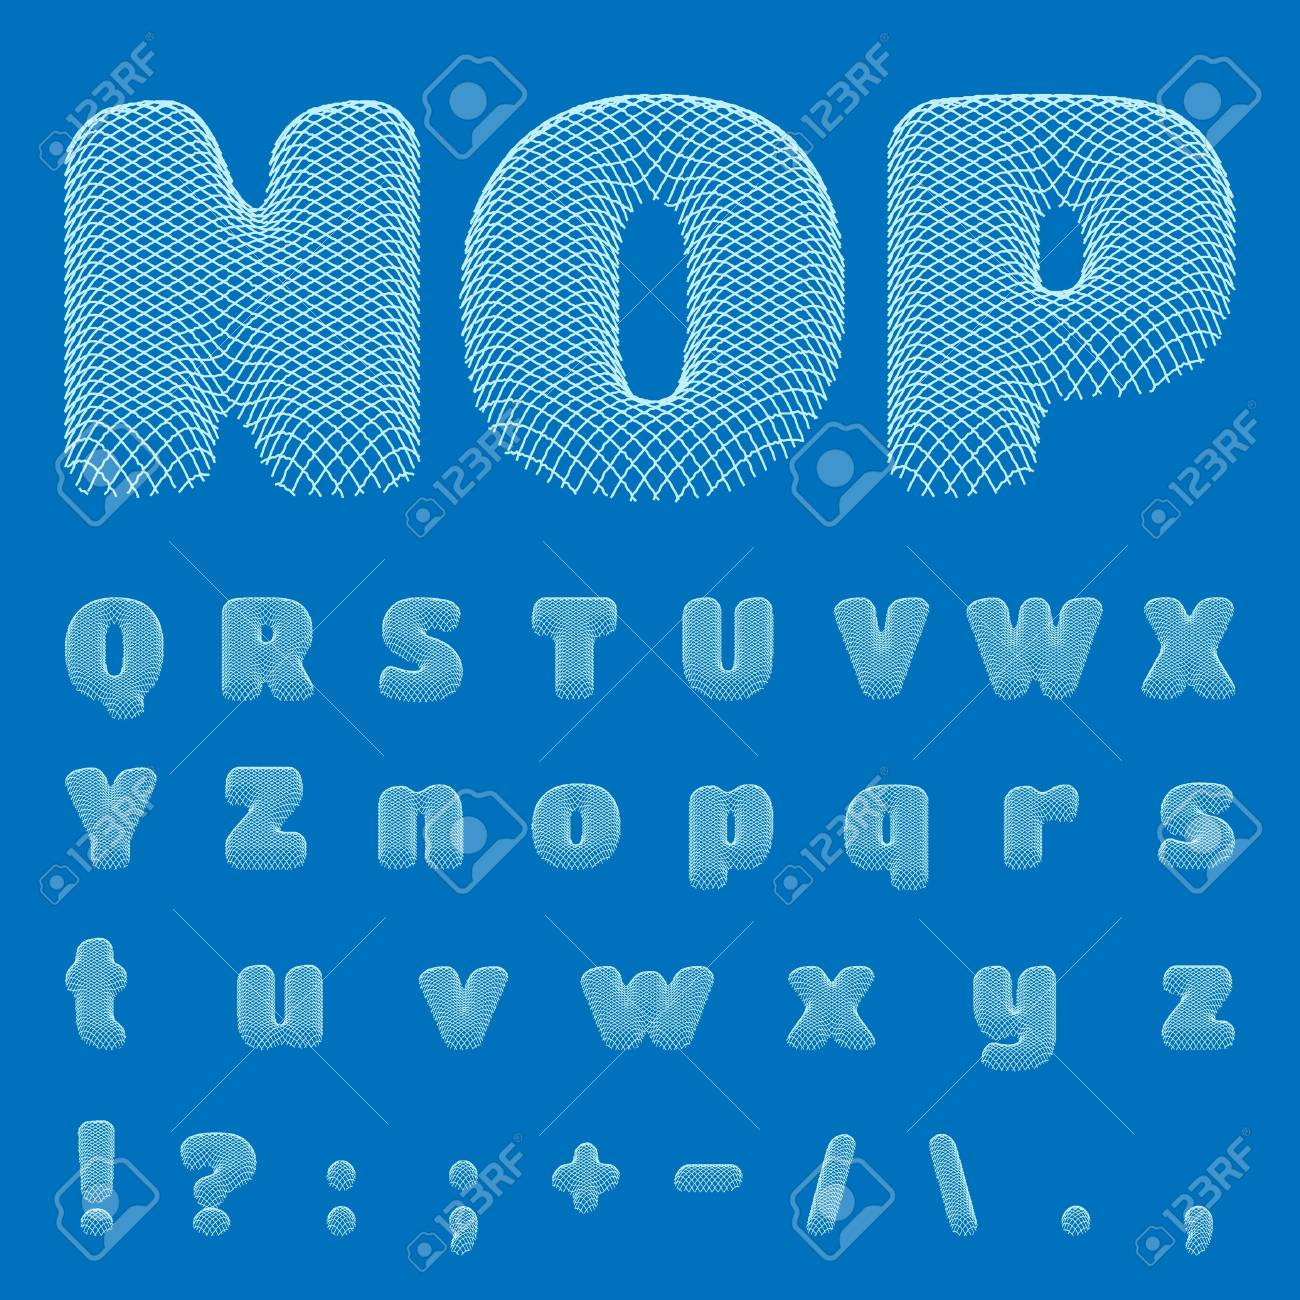 BluePrint Alphabet Stock Vector - 18814496